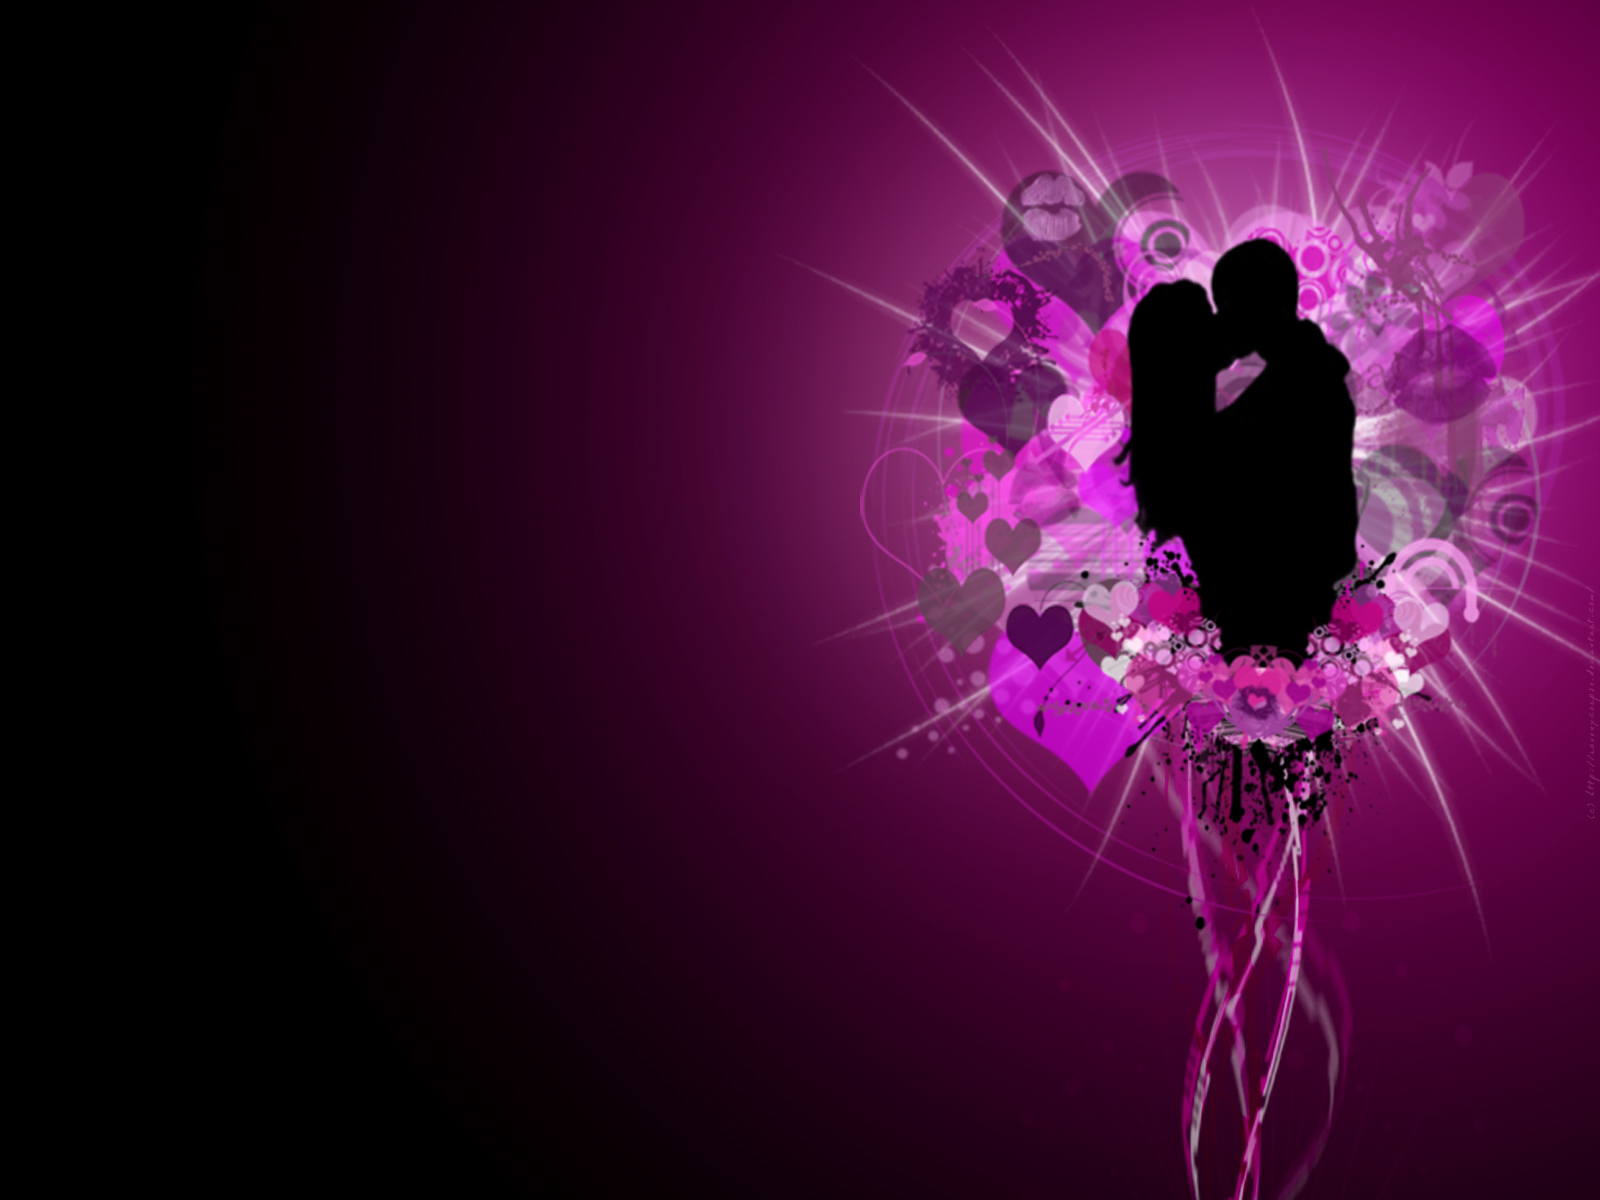 Beautiful Love Wallpaper For Desktop : Free Desktop Wallpapers Backgrounds: Valentine Wallpapers, Love Backgrounds for computer